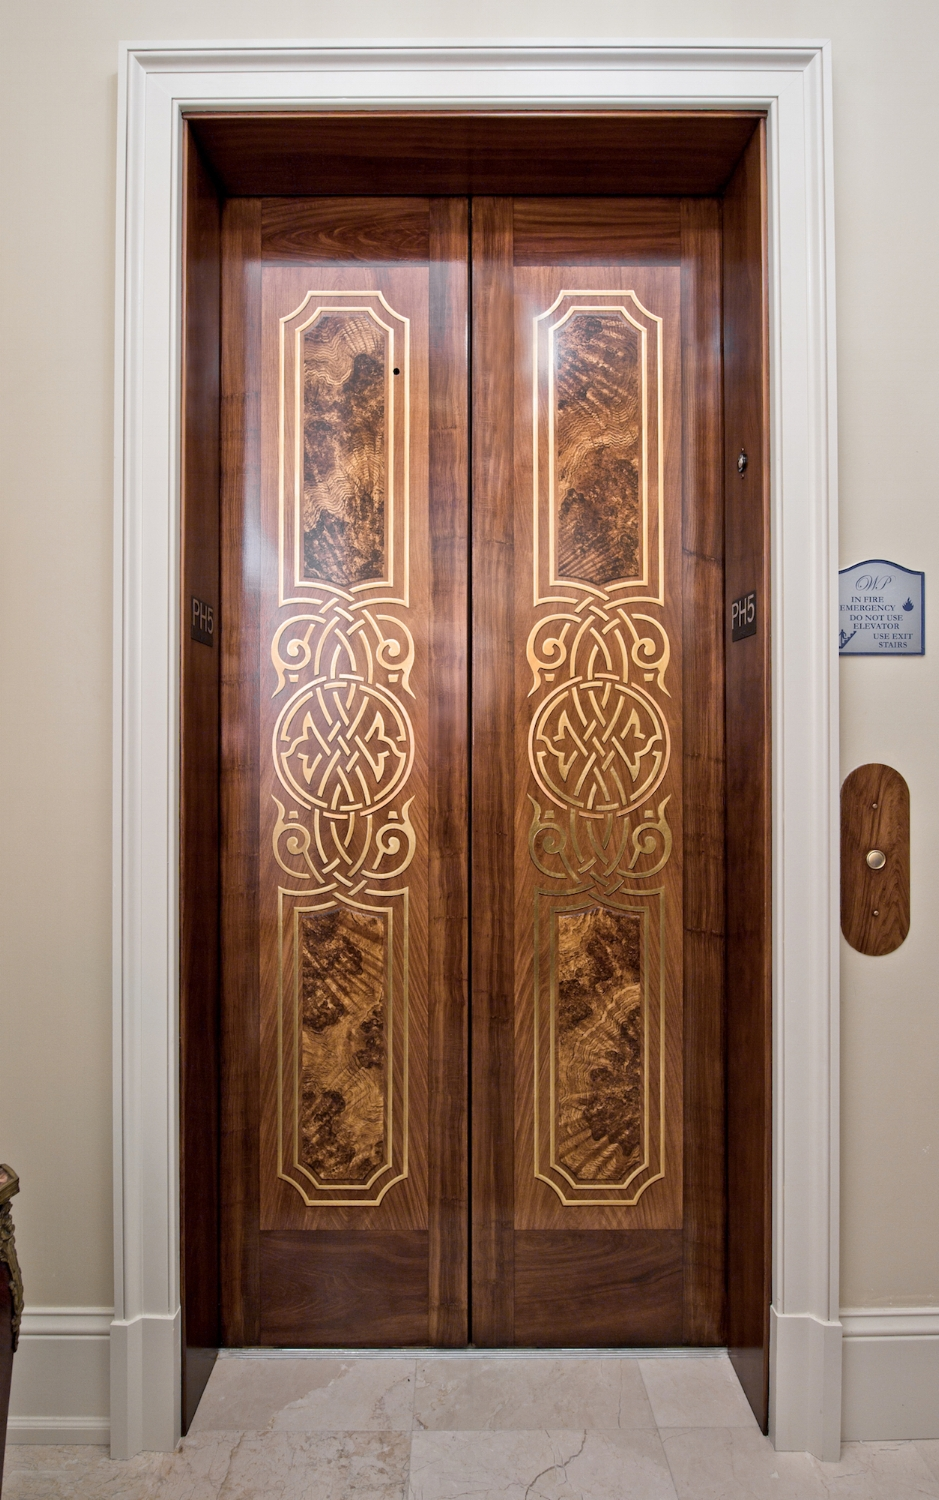 These stainless steel elevator doors were painted using a woodgraining technique. The custom design on the doors were gilded using Japanese Colored Silver Leaf.